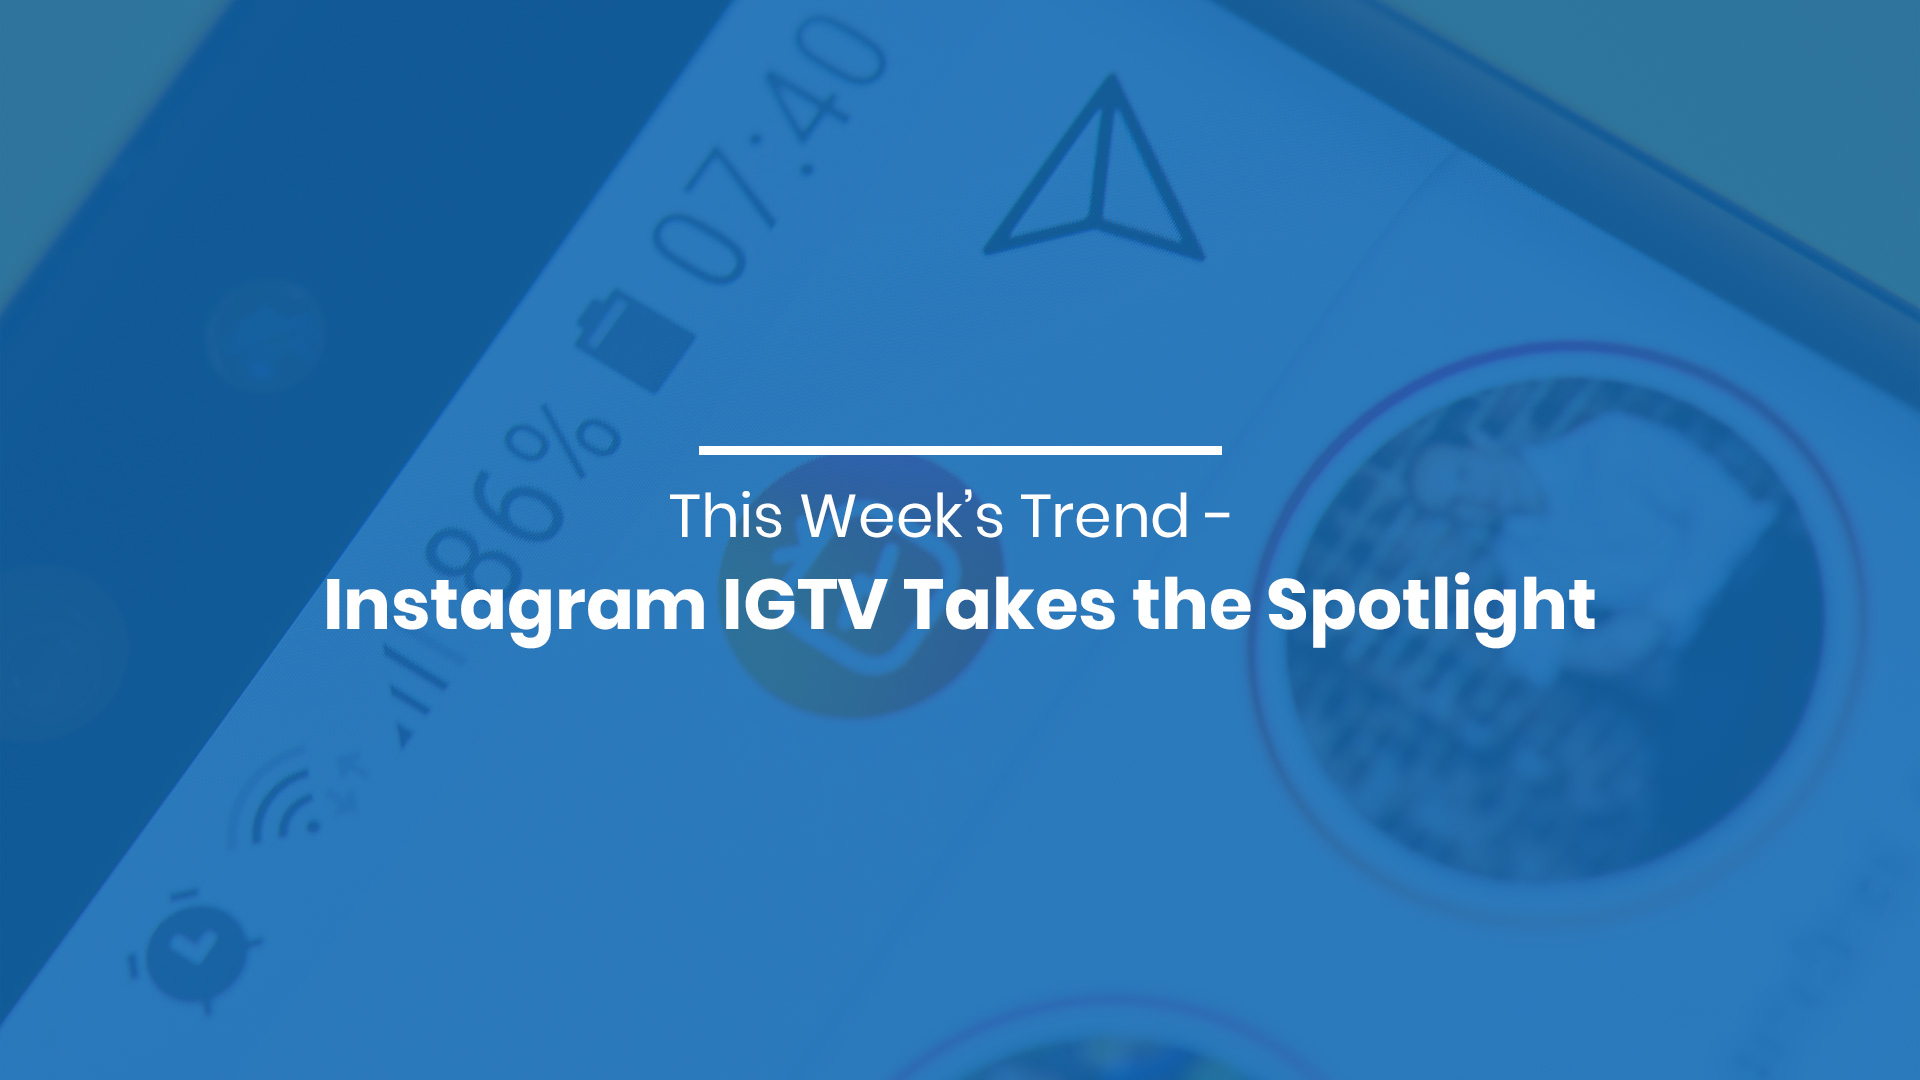 This Week's Trend - Instagram IGTV Takes the Spotlight